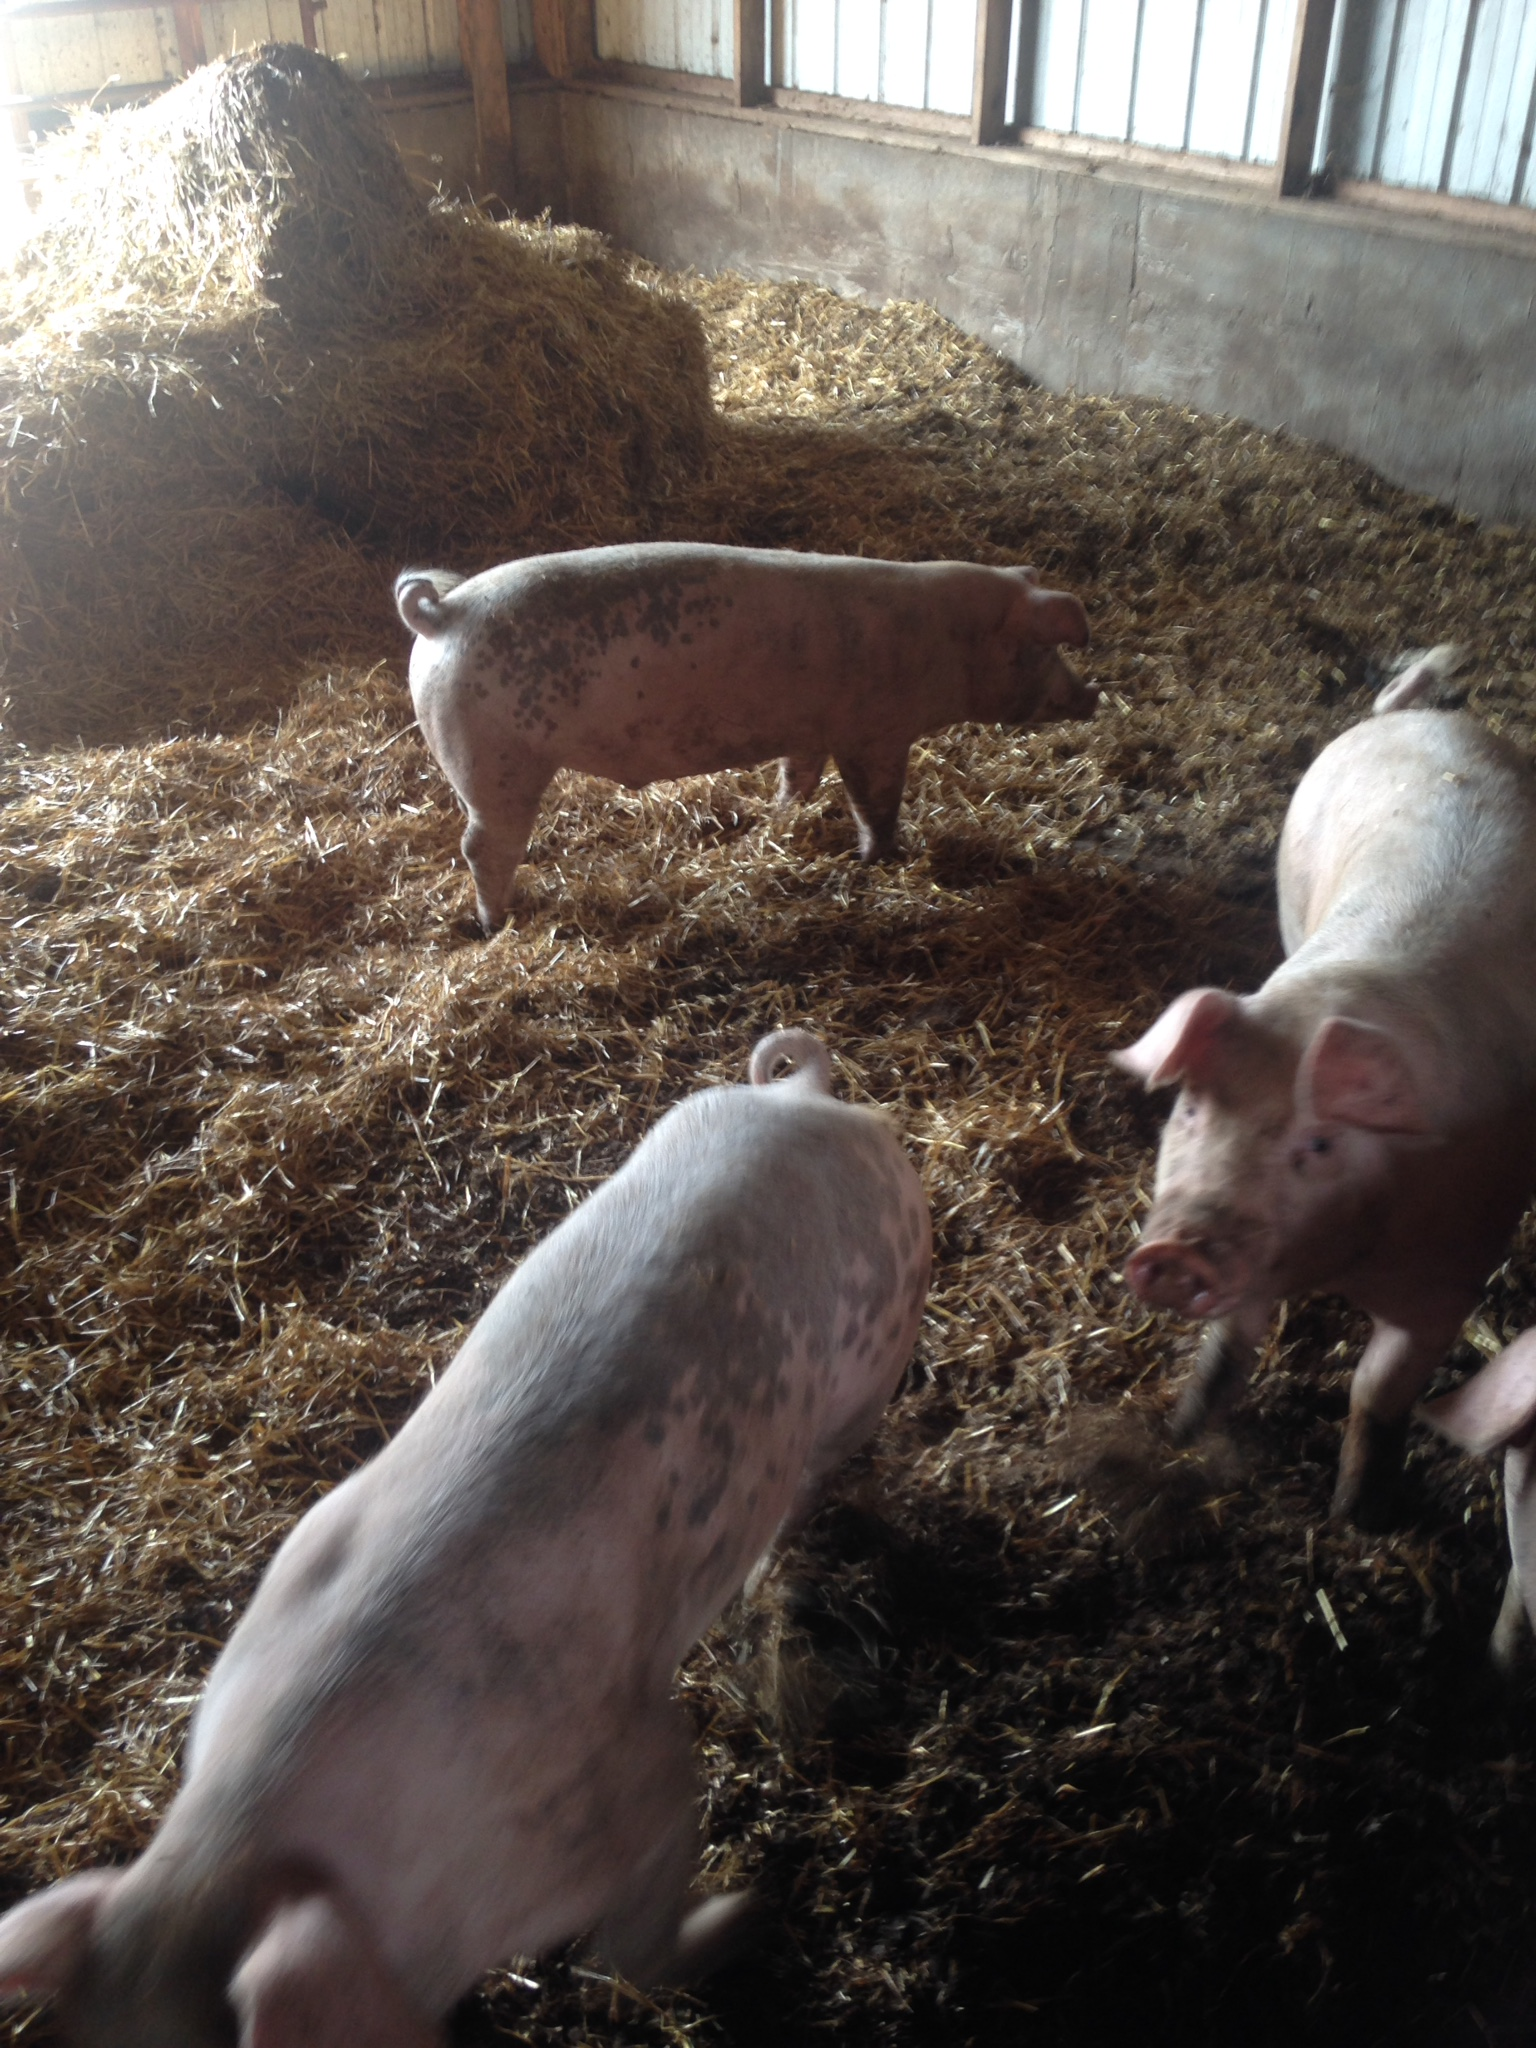 Whey Fed PorkOur hogs are fed whey, leftover from cheesemaking.Whey is a great source of protein for hogs and makes very healthy meat.They are also fed non gmo grains that we grind ourselves. -